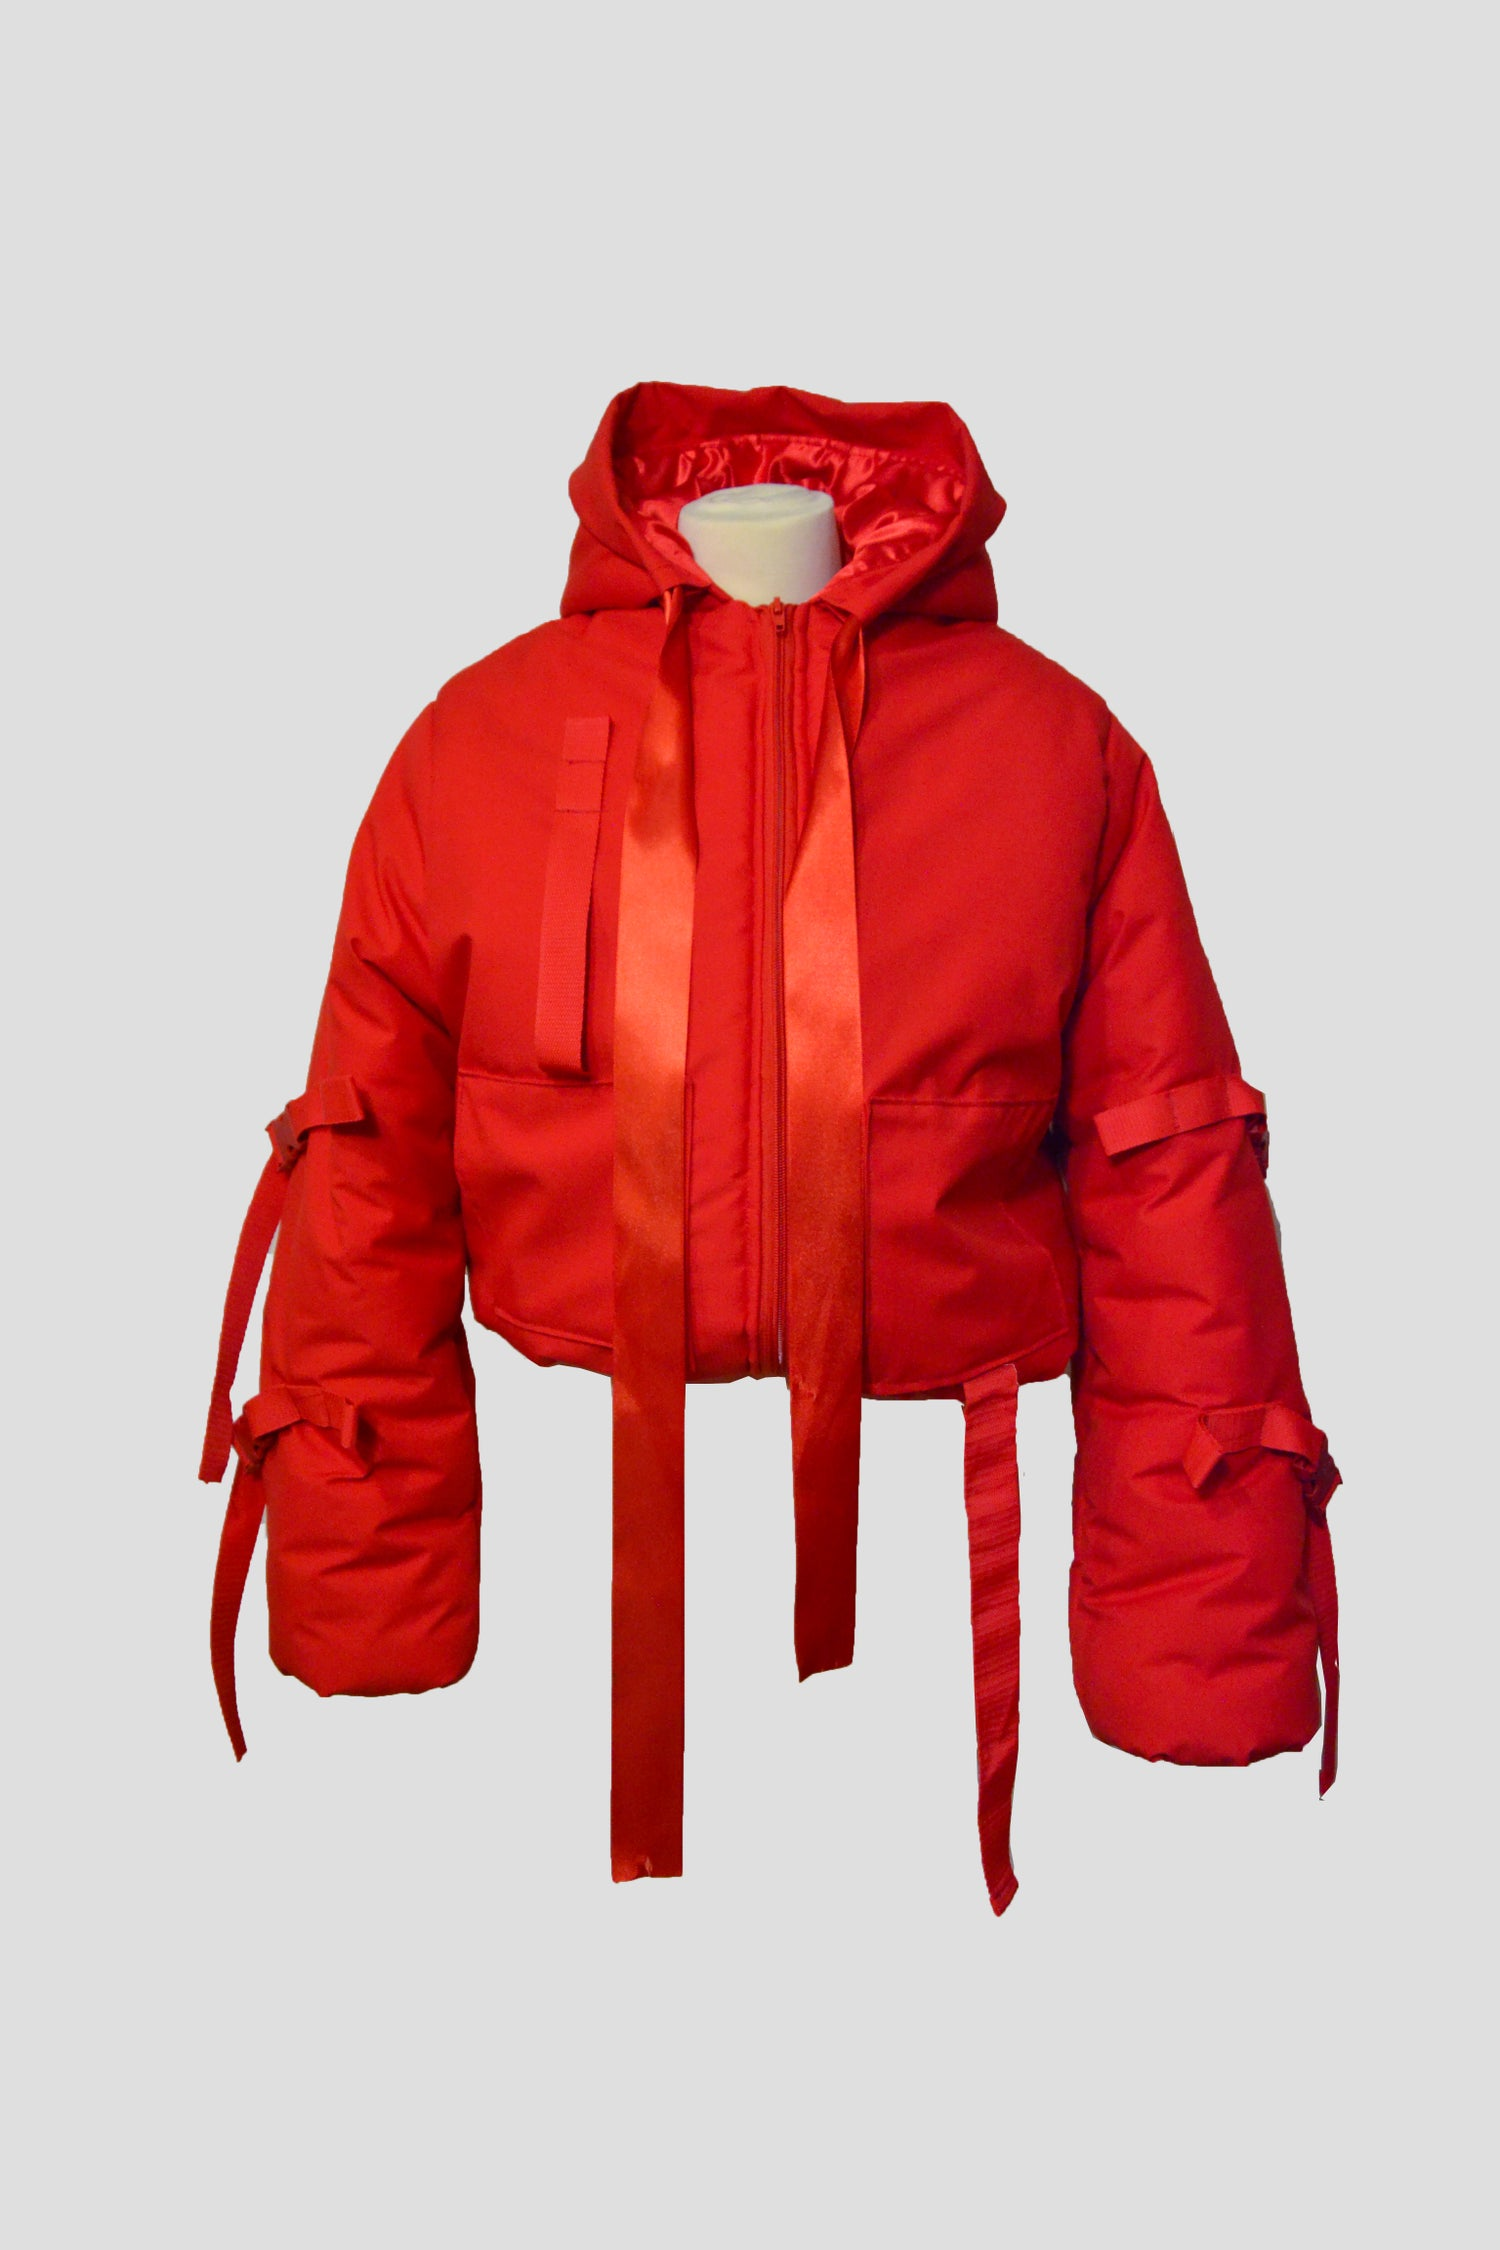 Image of red croppped puffy jacket